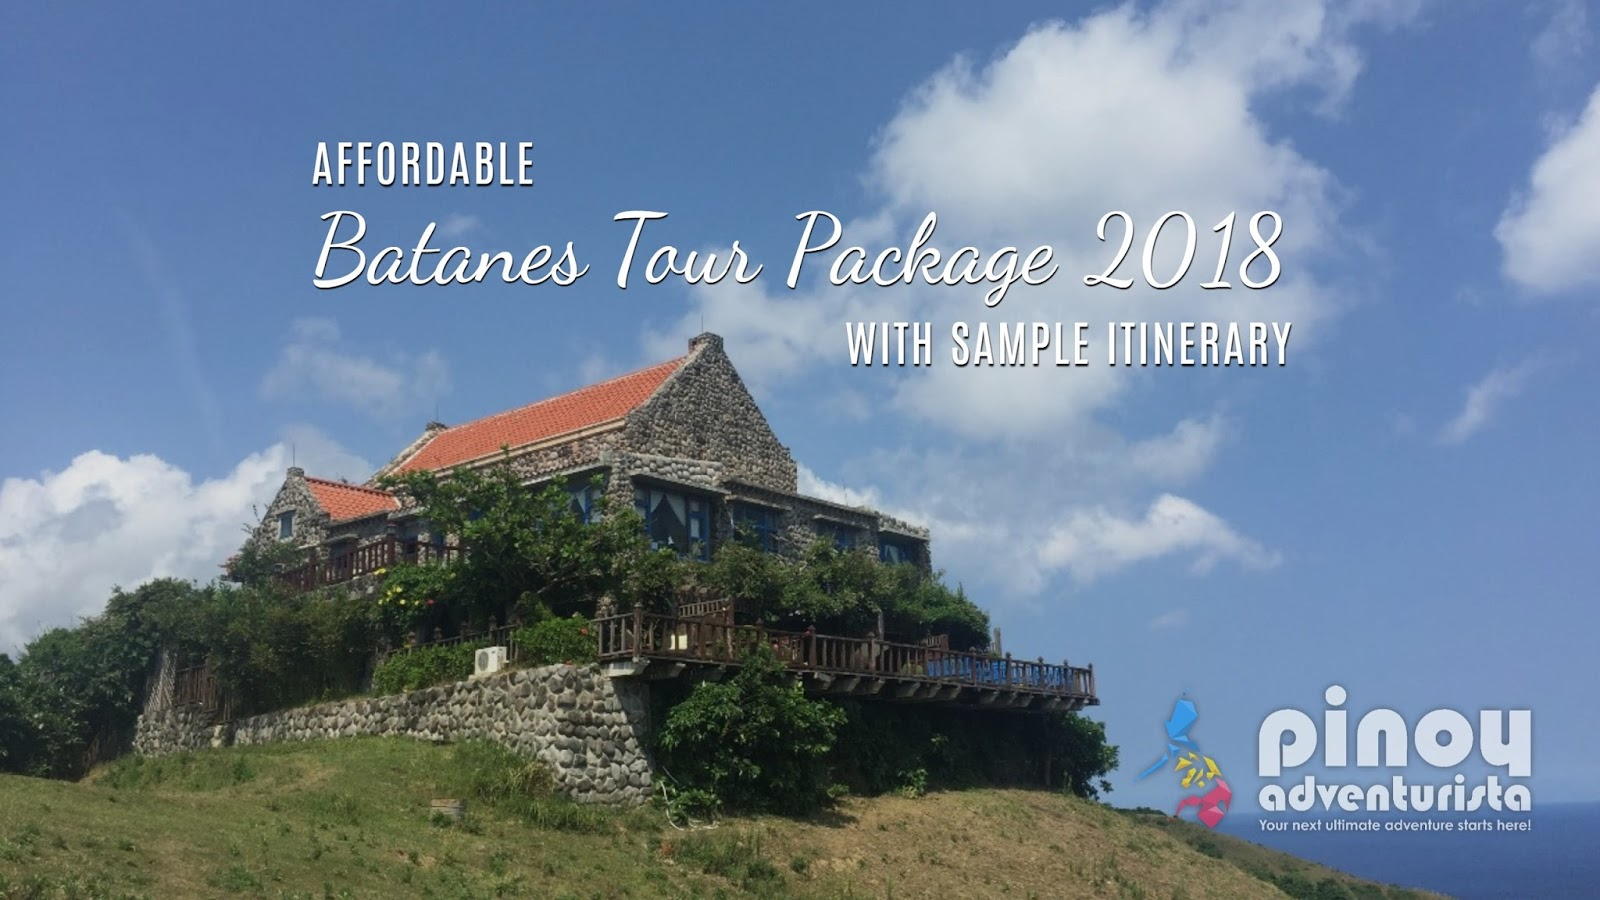 Affordable Batanes Tour Package Sample Batanes Itinerary Blogs Budget Travel Guides Diy Itinerary Travel Tips Hotel Reviews And More Pinoy Adventurista